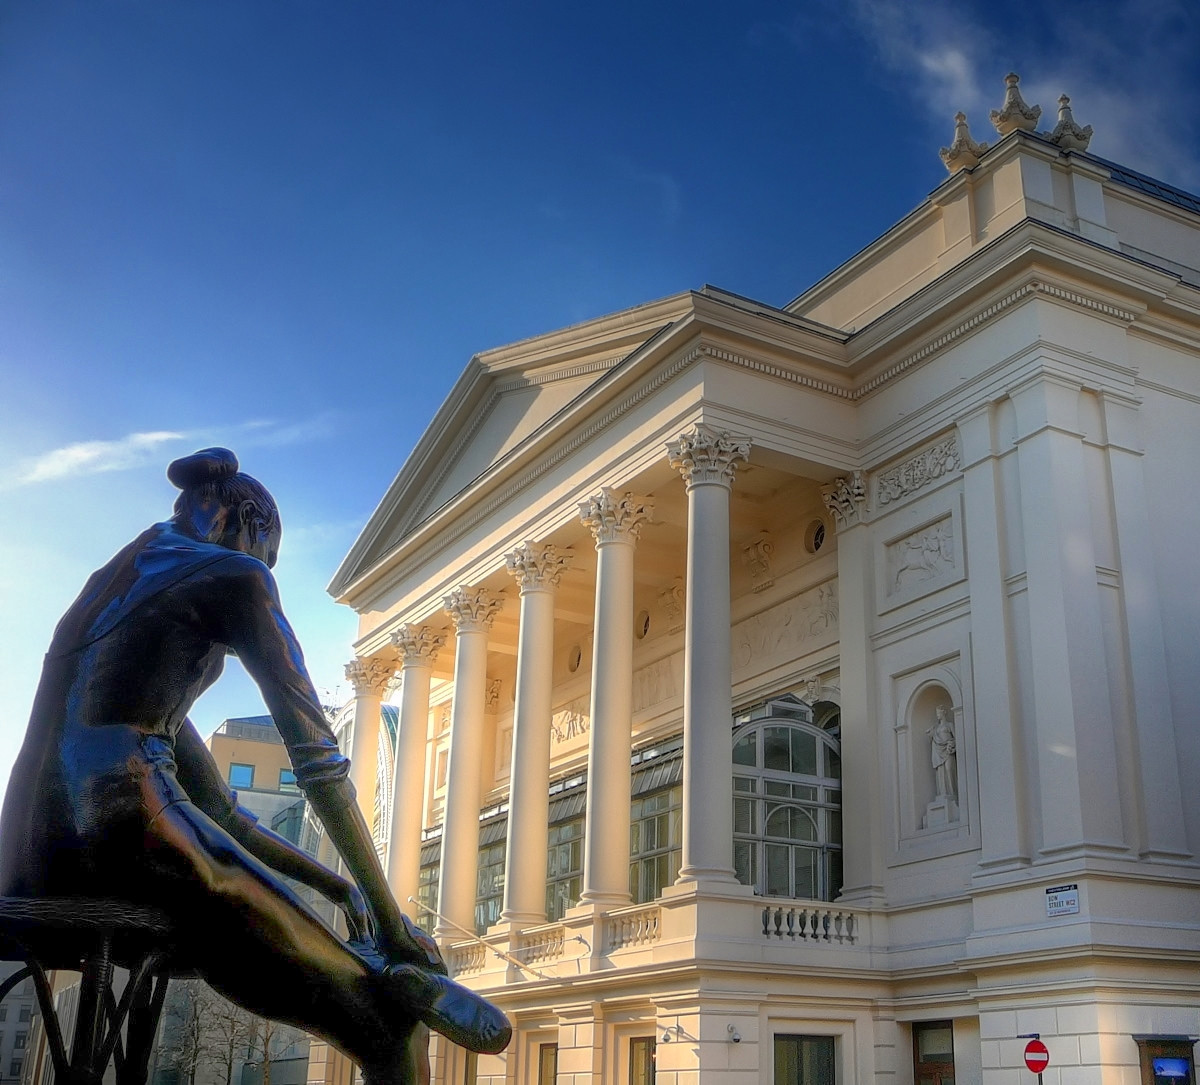 The Royal Opera House, Bow Street frontage, with the statue of Dame Ninette de Valois in the foreground. Credit Russ London